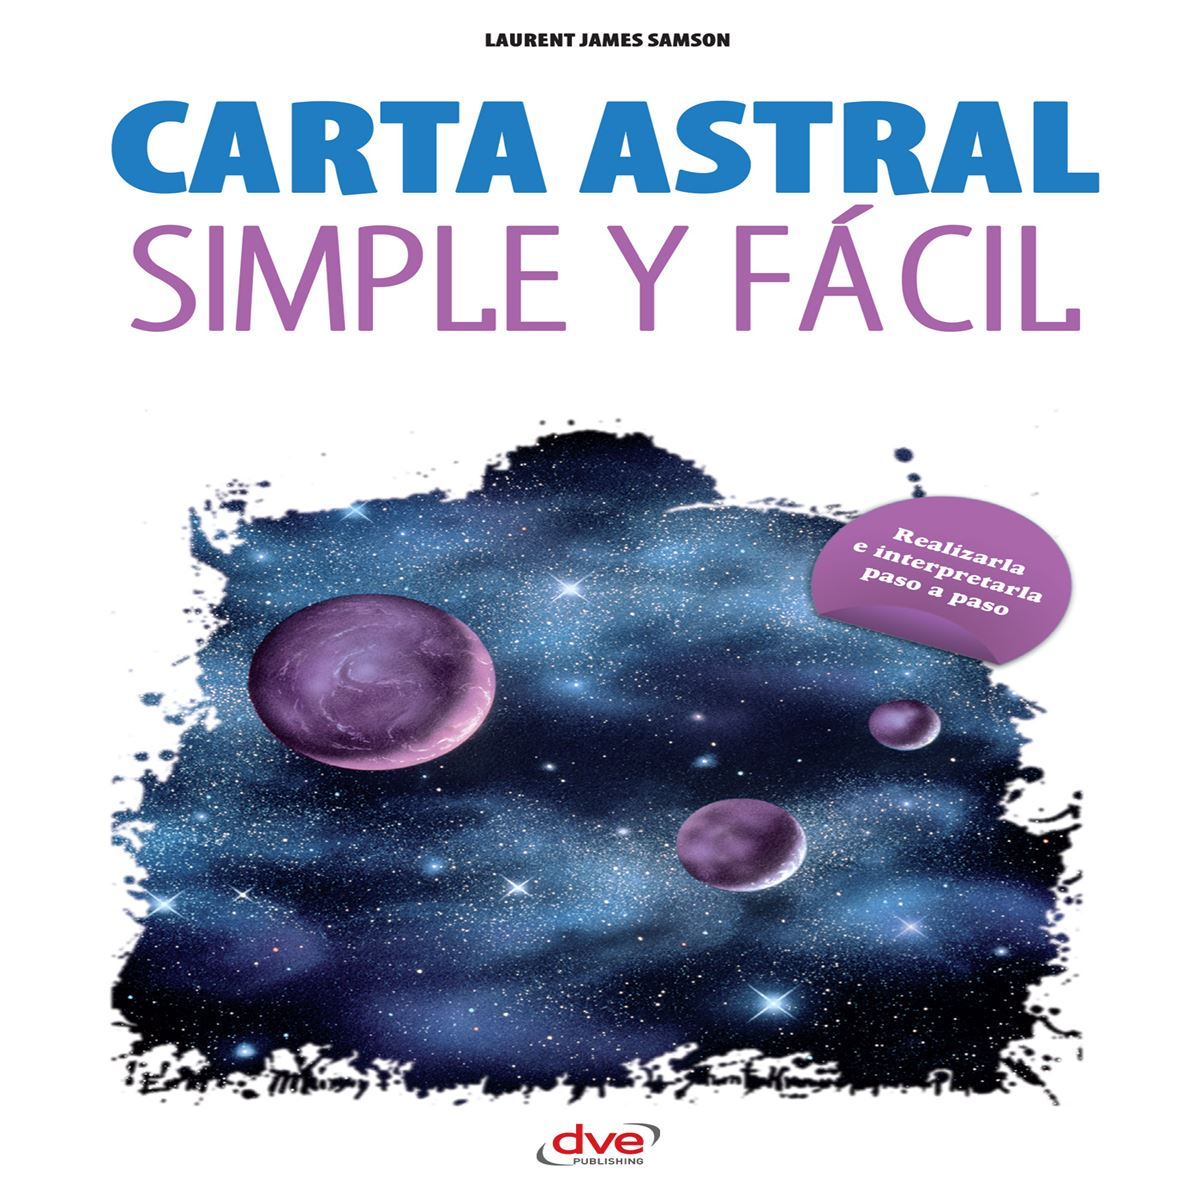 Carta astral simple y fácil